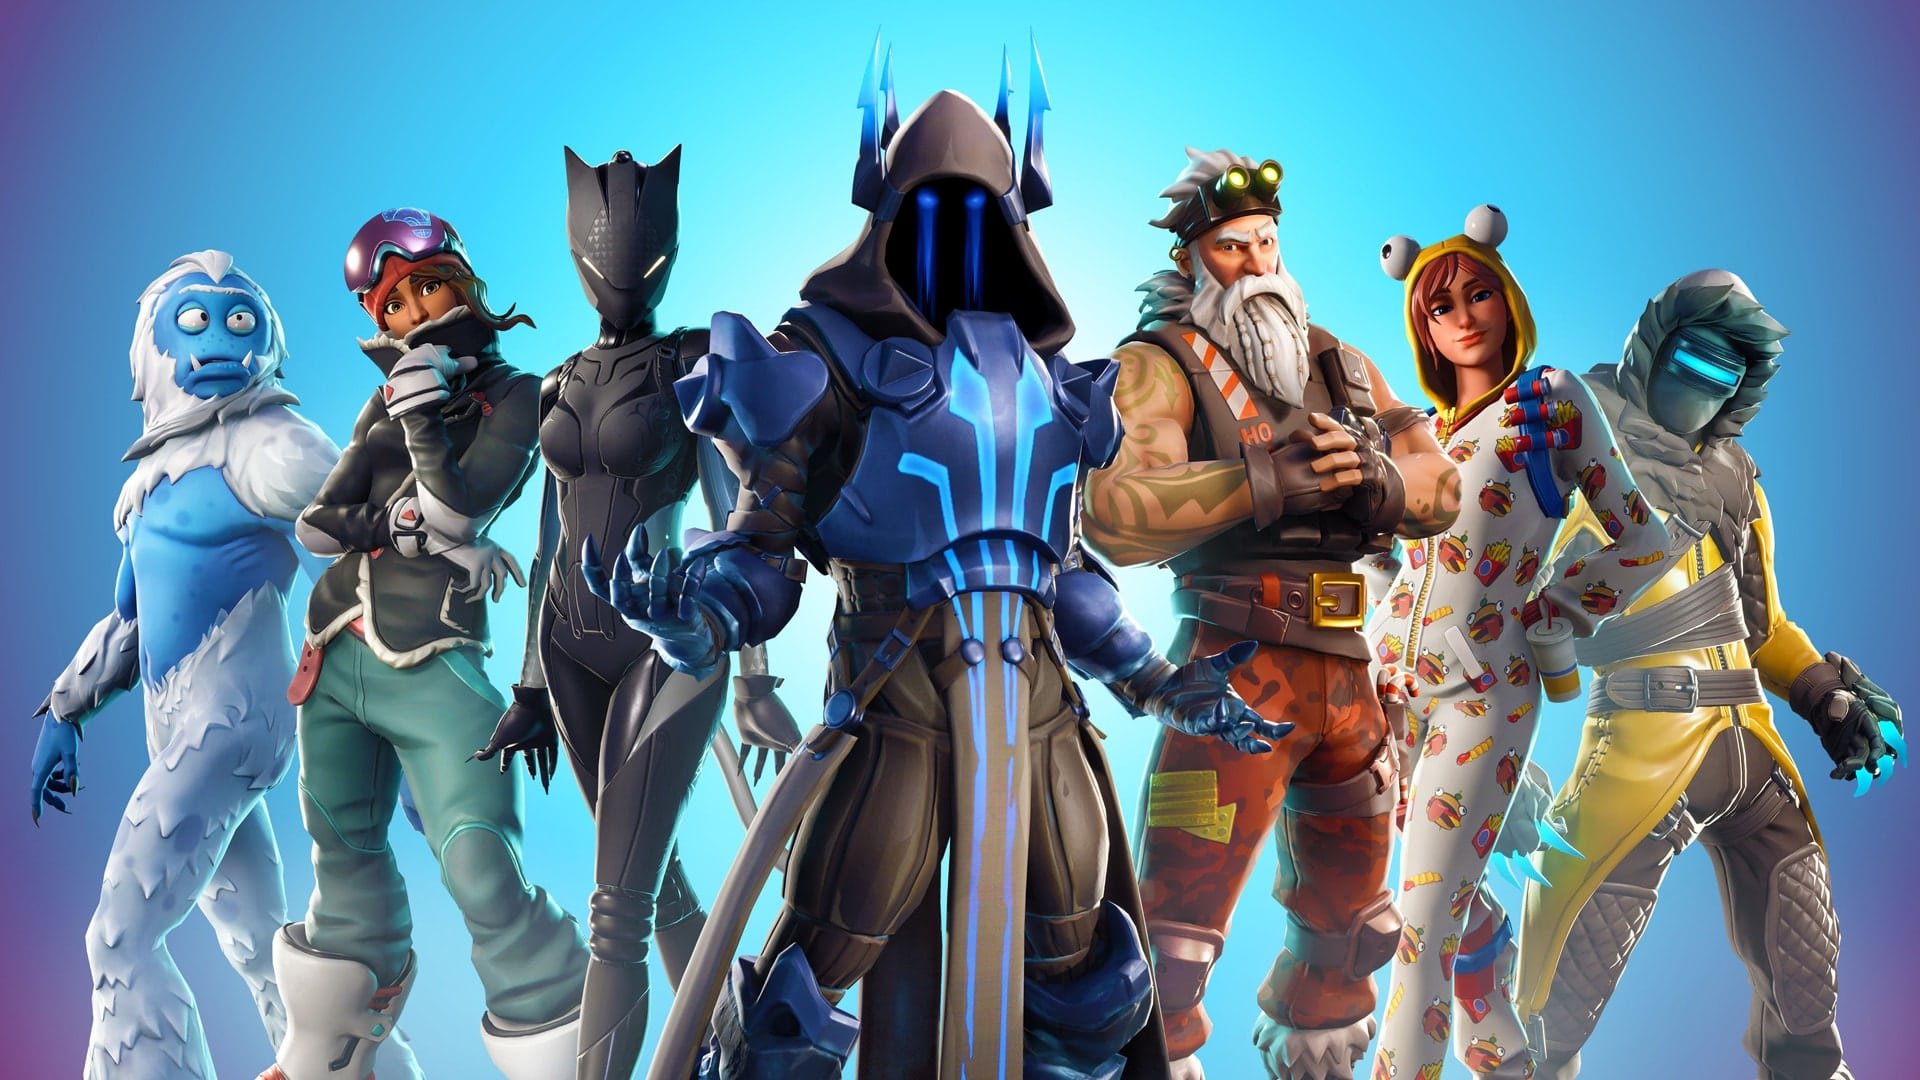 Wingtip Fortnite Popular Wallpapers Fortnite Gamers 1920x1080